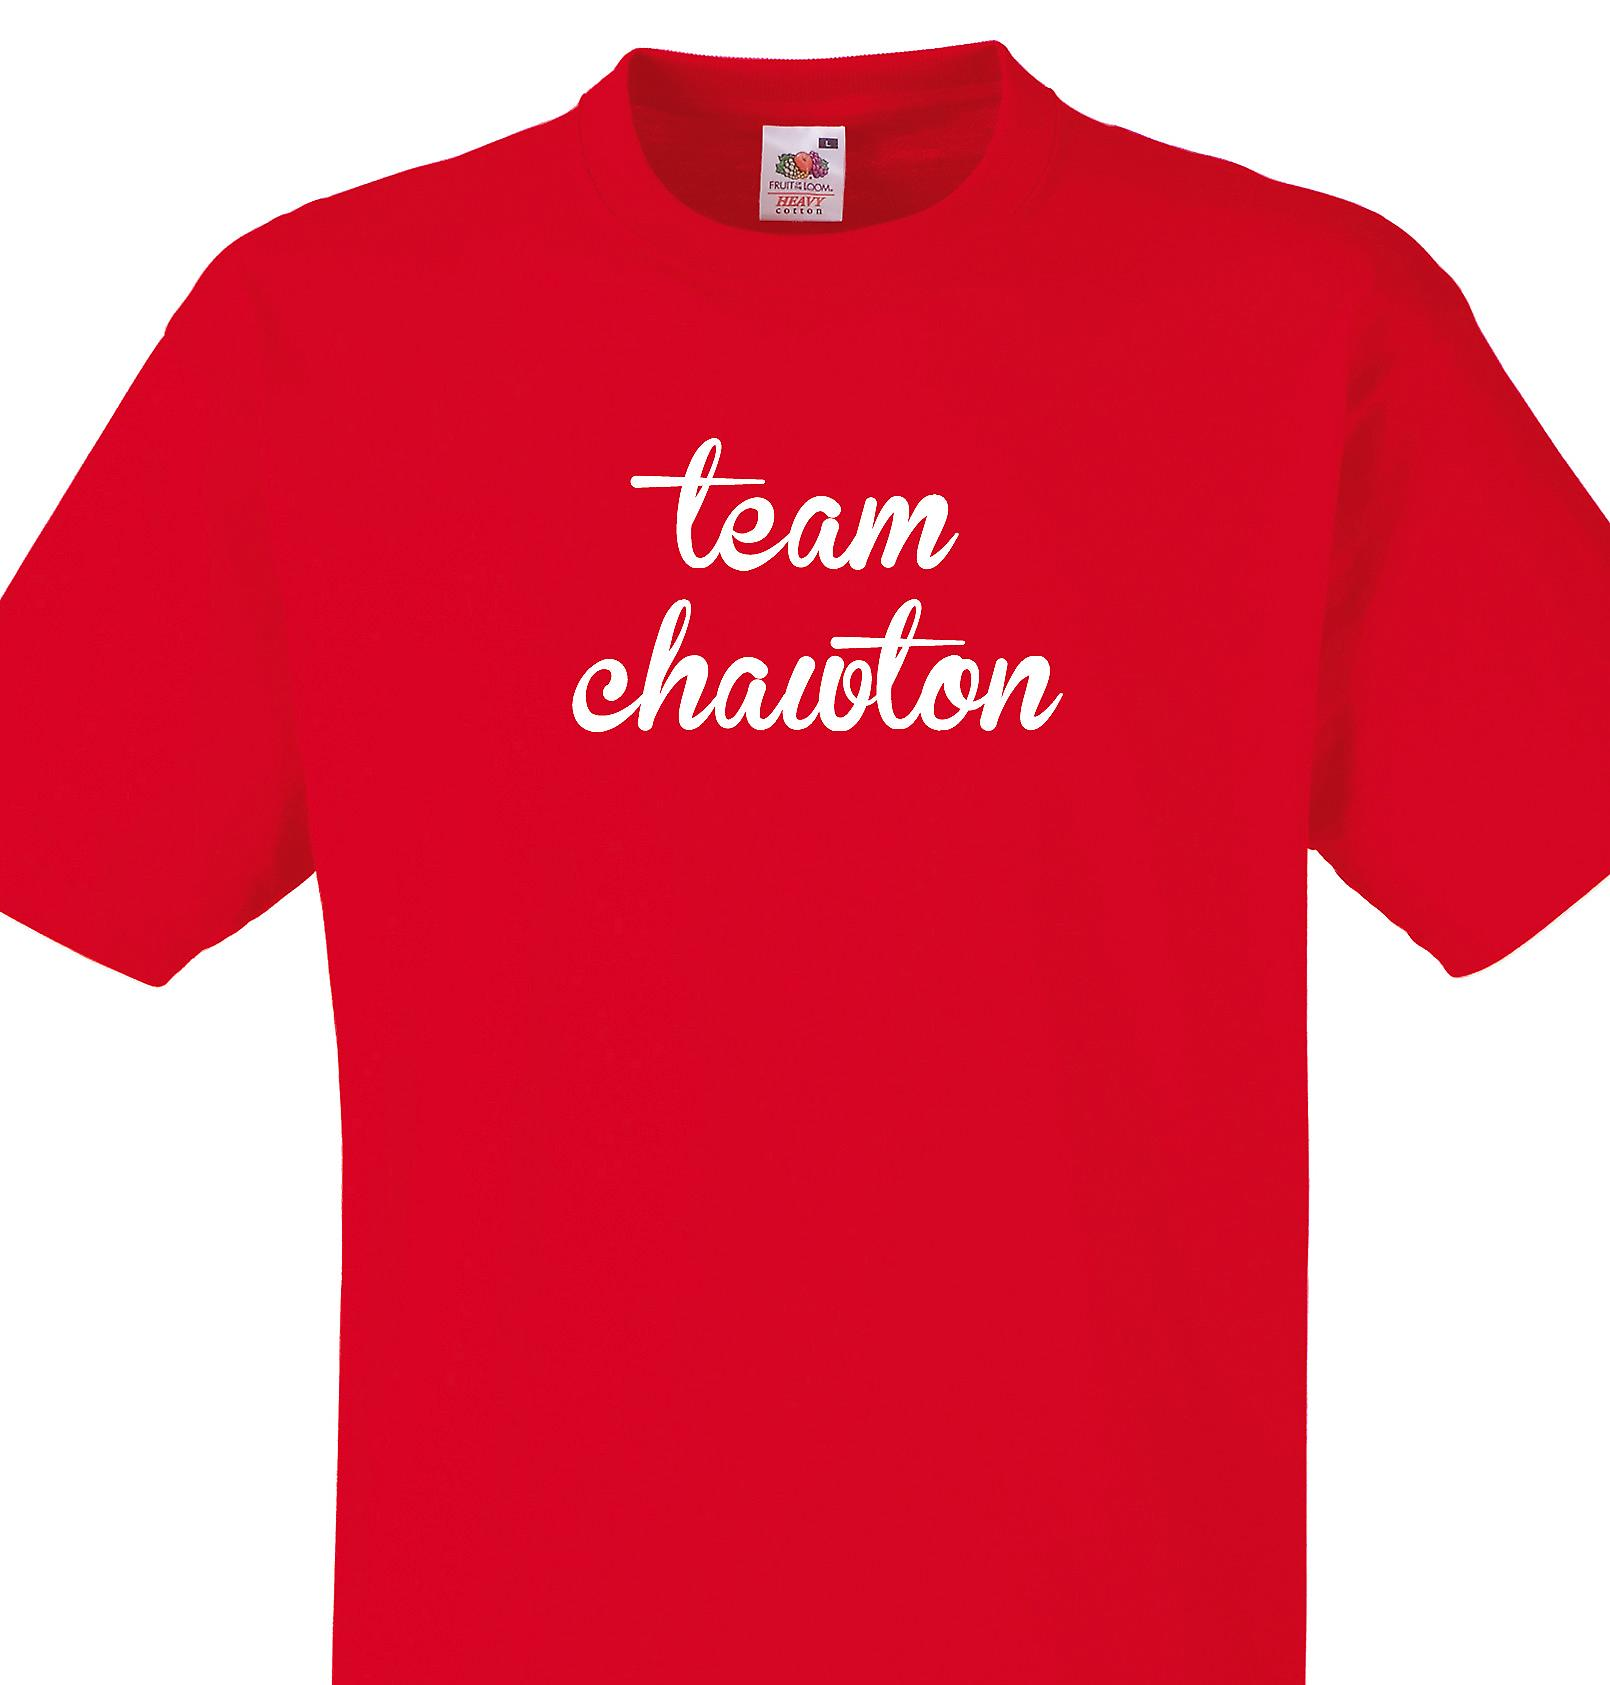 Team Chawton Red T shirt